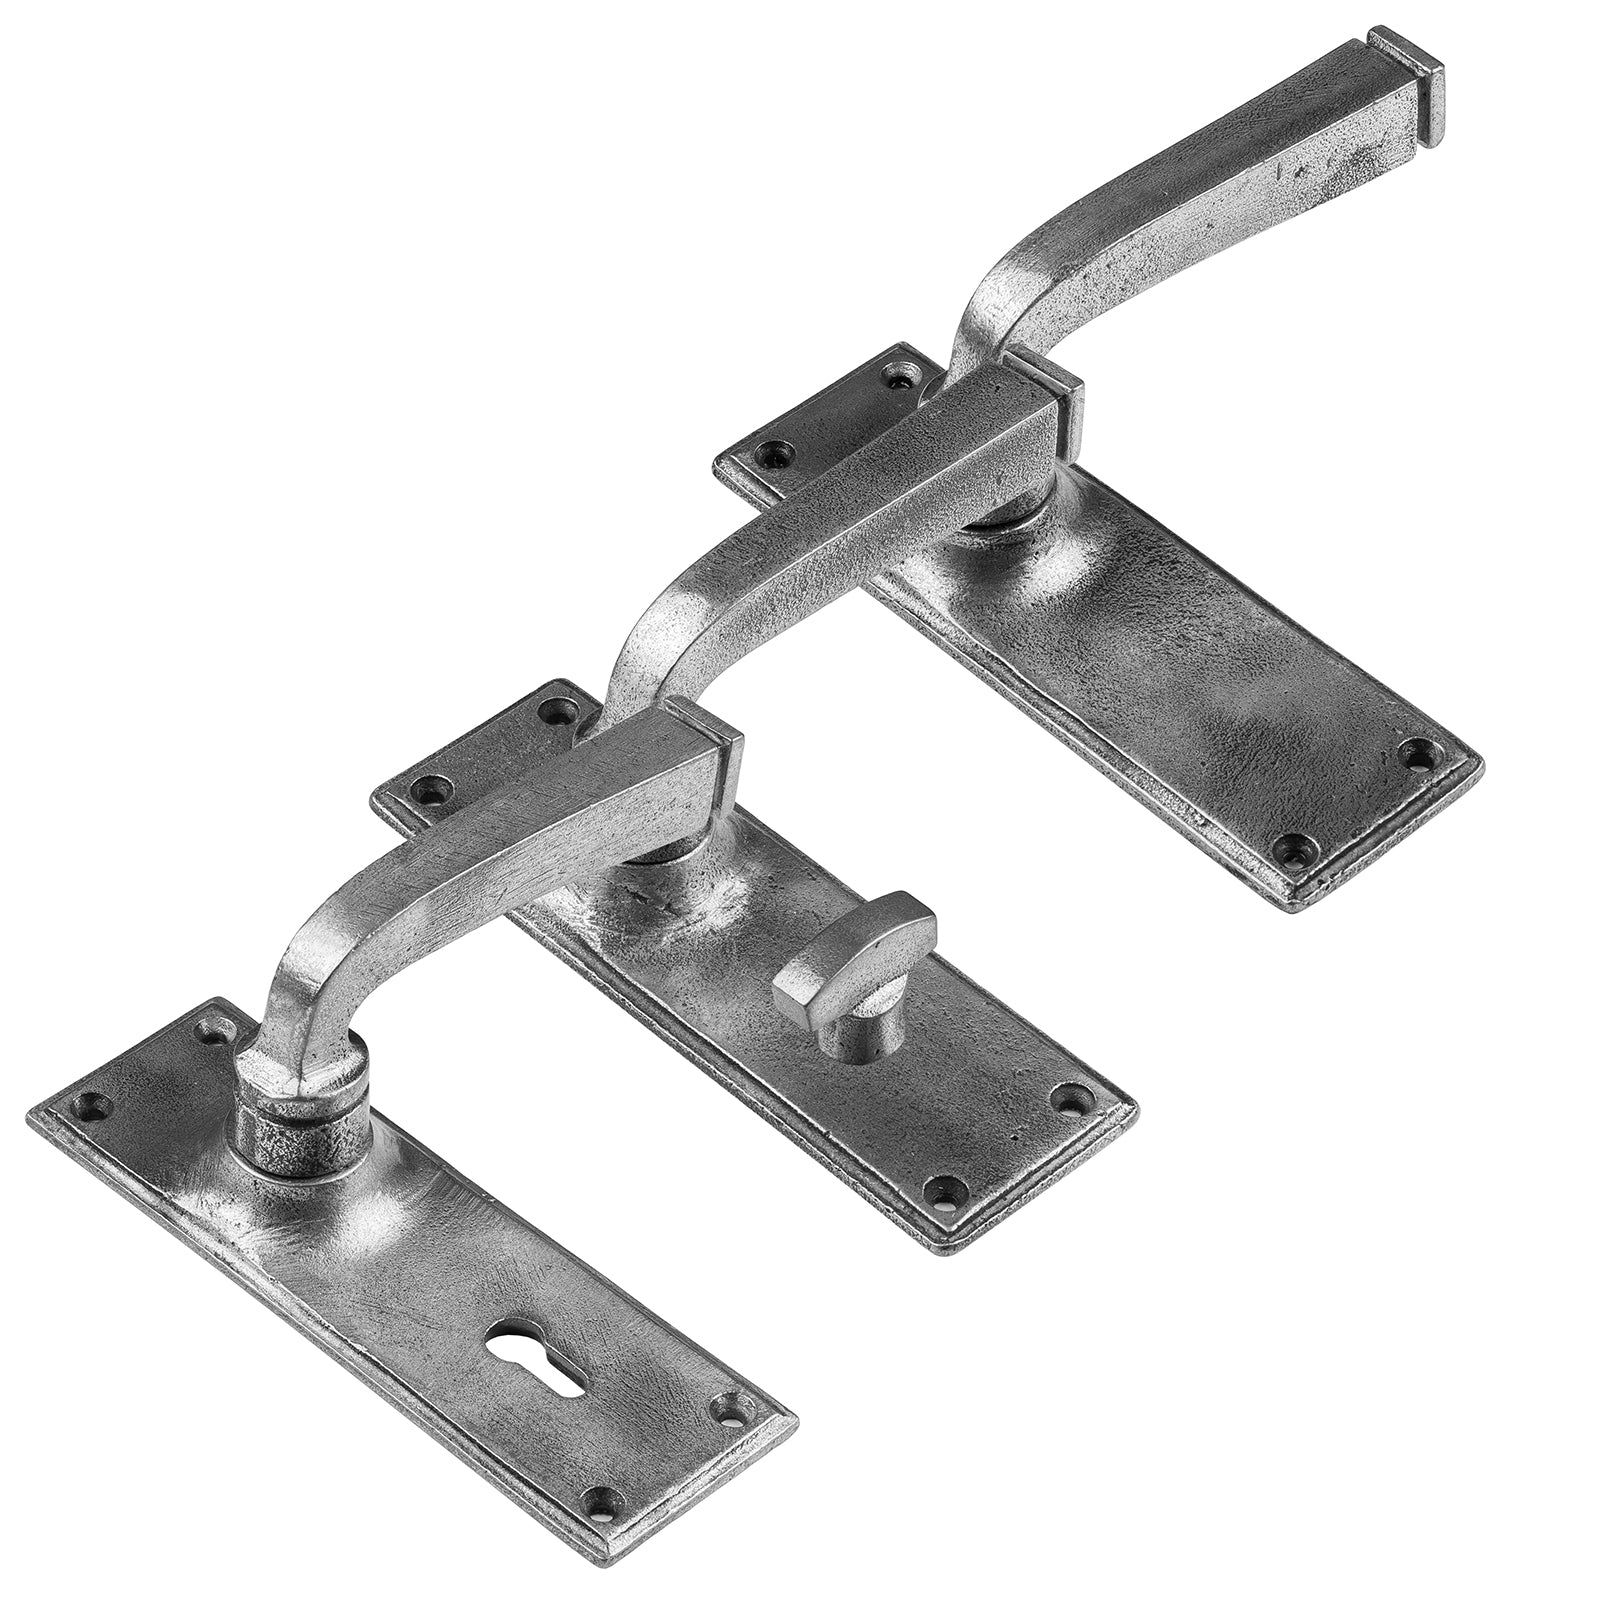 pewter internal door handles, Avon Lever Handles in pewter